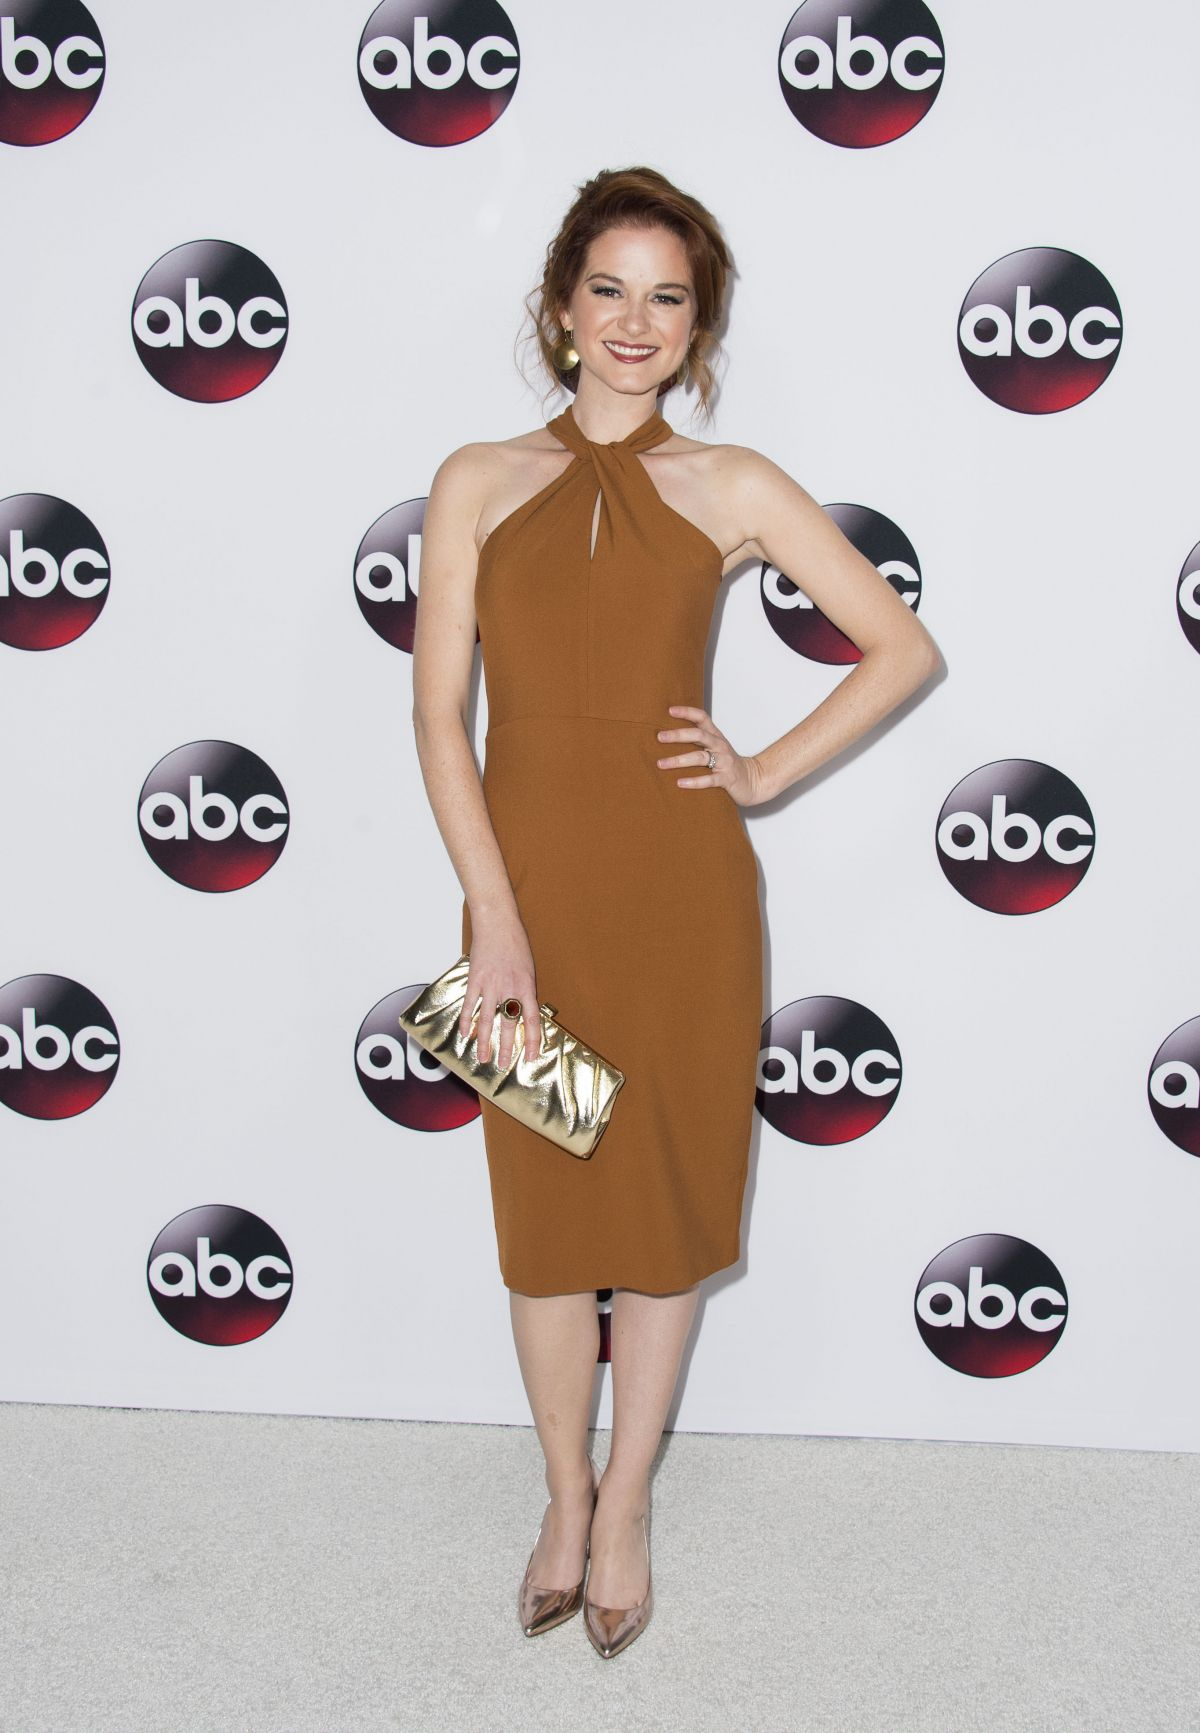 SARAH DREW at ABC 2016 Winter TCA Tour in Pasadena 001/09/2016